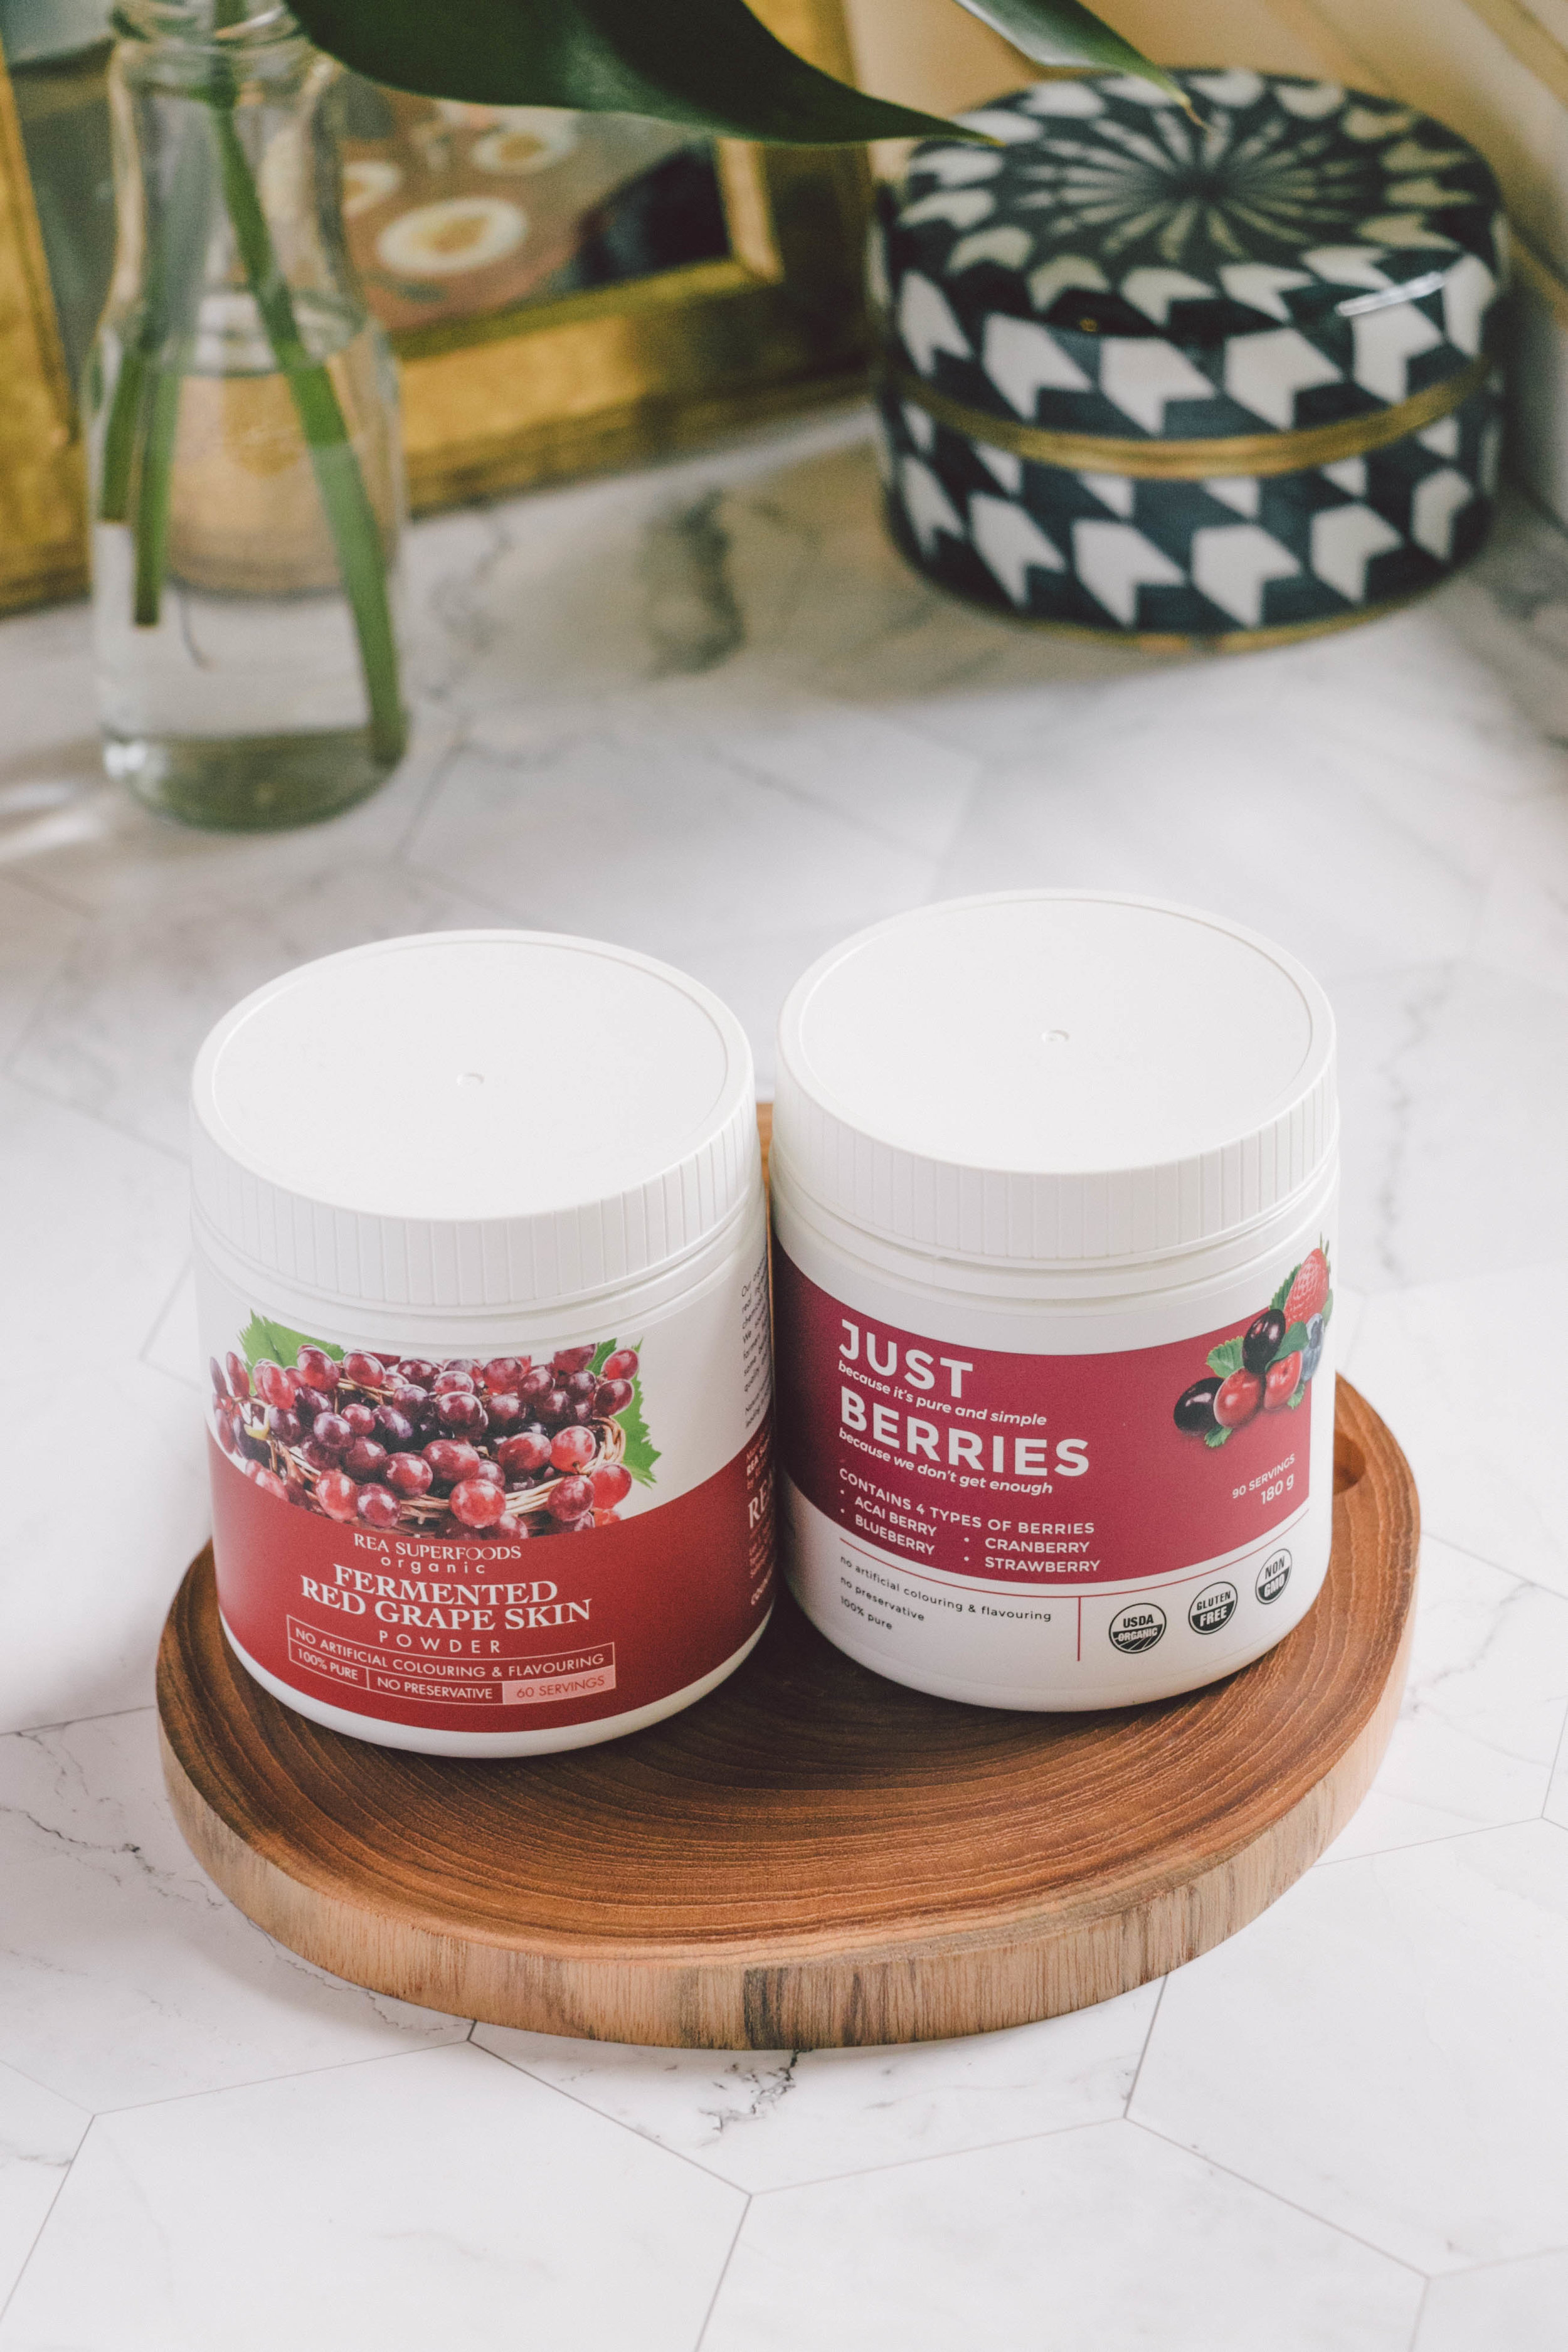 Just Berries & Fermented Grape Skin Powder - Just Berries is a blend purely made up of acai berry, blueberry, cranberry and strawberry and is loaded with antioxidants, vitamin C, electrolytes, trace minerals and amino acids. I'm in love its vibrant pink hue—I use Just Berries to naturally colour my dishes, especially my desserts. It adds a gorgeous pop of pink and a delicious berry flavour.Naturally high in resveratrol and antioxidants, the Fermented Grape Skin powder tastes and has similar heart protecting benefits to red wine, minus the alcohol. Being fermented as well means bonus points for promoting healthy gut bacteria.